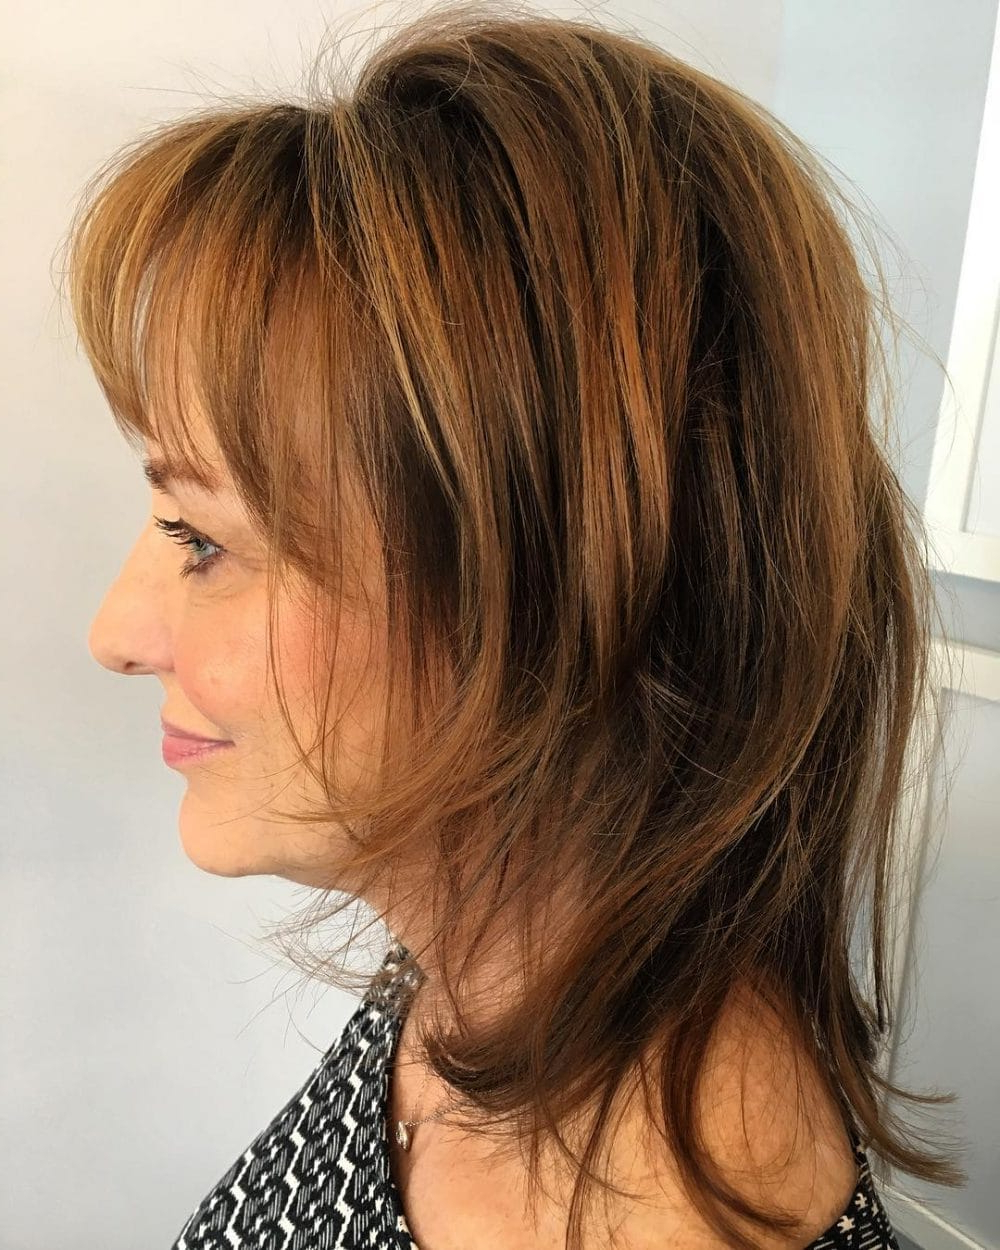 23 Modern Shag Haircuts To Try In 2018 Regarding Short To Medium Shaggy Hairstyles (View 11 of 25)